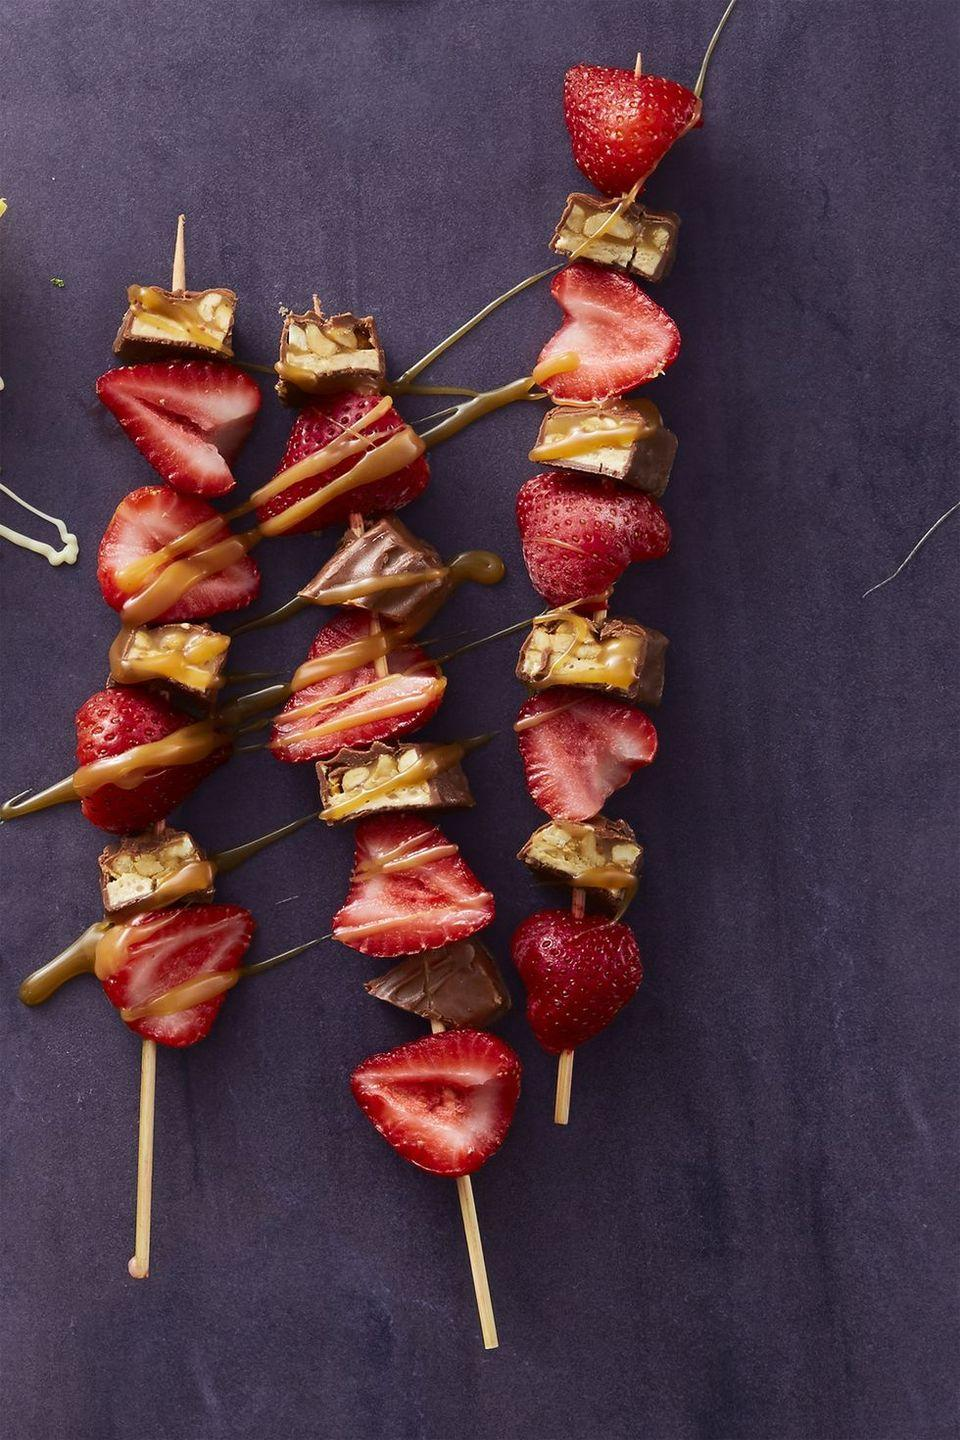 """<p>Fun, simple and healthier than eating the <em>whole</em> candy bar! </p><p><em><a href=""""https://www.womansday.com/food-recipes/food-drinks/recipes/a59413/strawberry-snickers-sticks-recipe/"""" rel=""""nofollow noopener"""" target=""""_blank"""" data-ylk=""""slk:Get the recipe from Woman's Day »"""" class=""""link rapid-noclick-resp"""">Get the recipe from Woman's Day »</a></em></p>"""